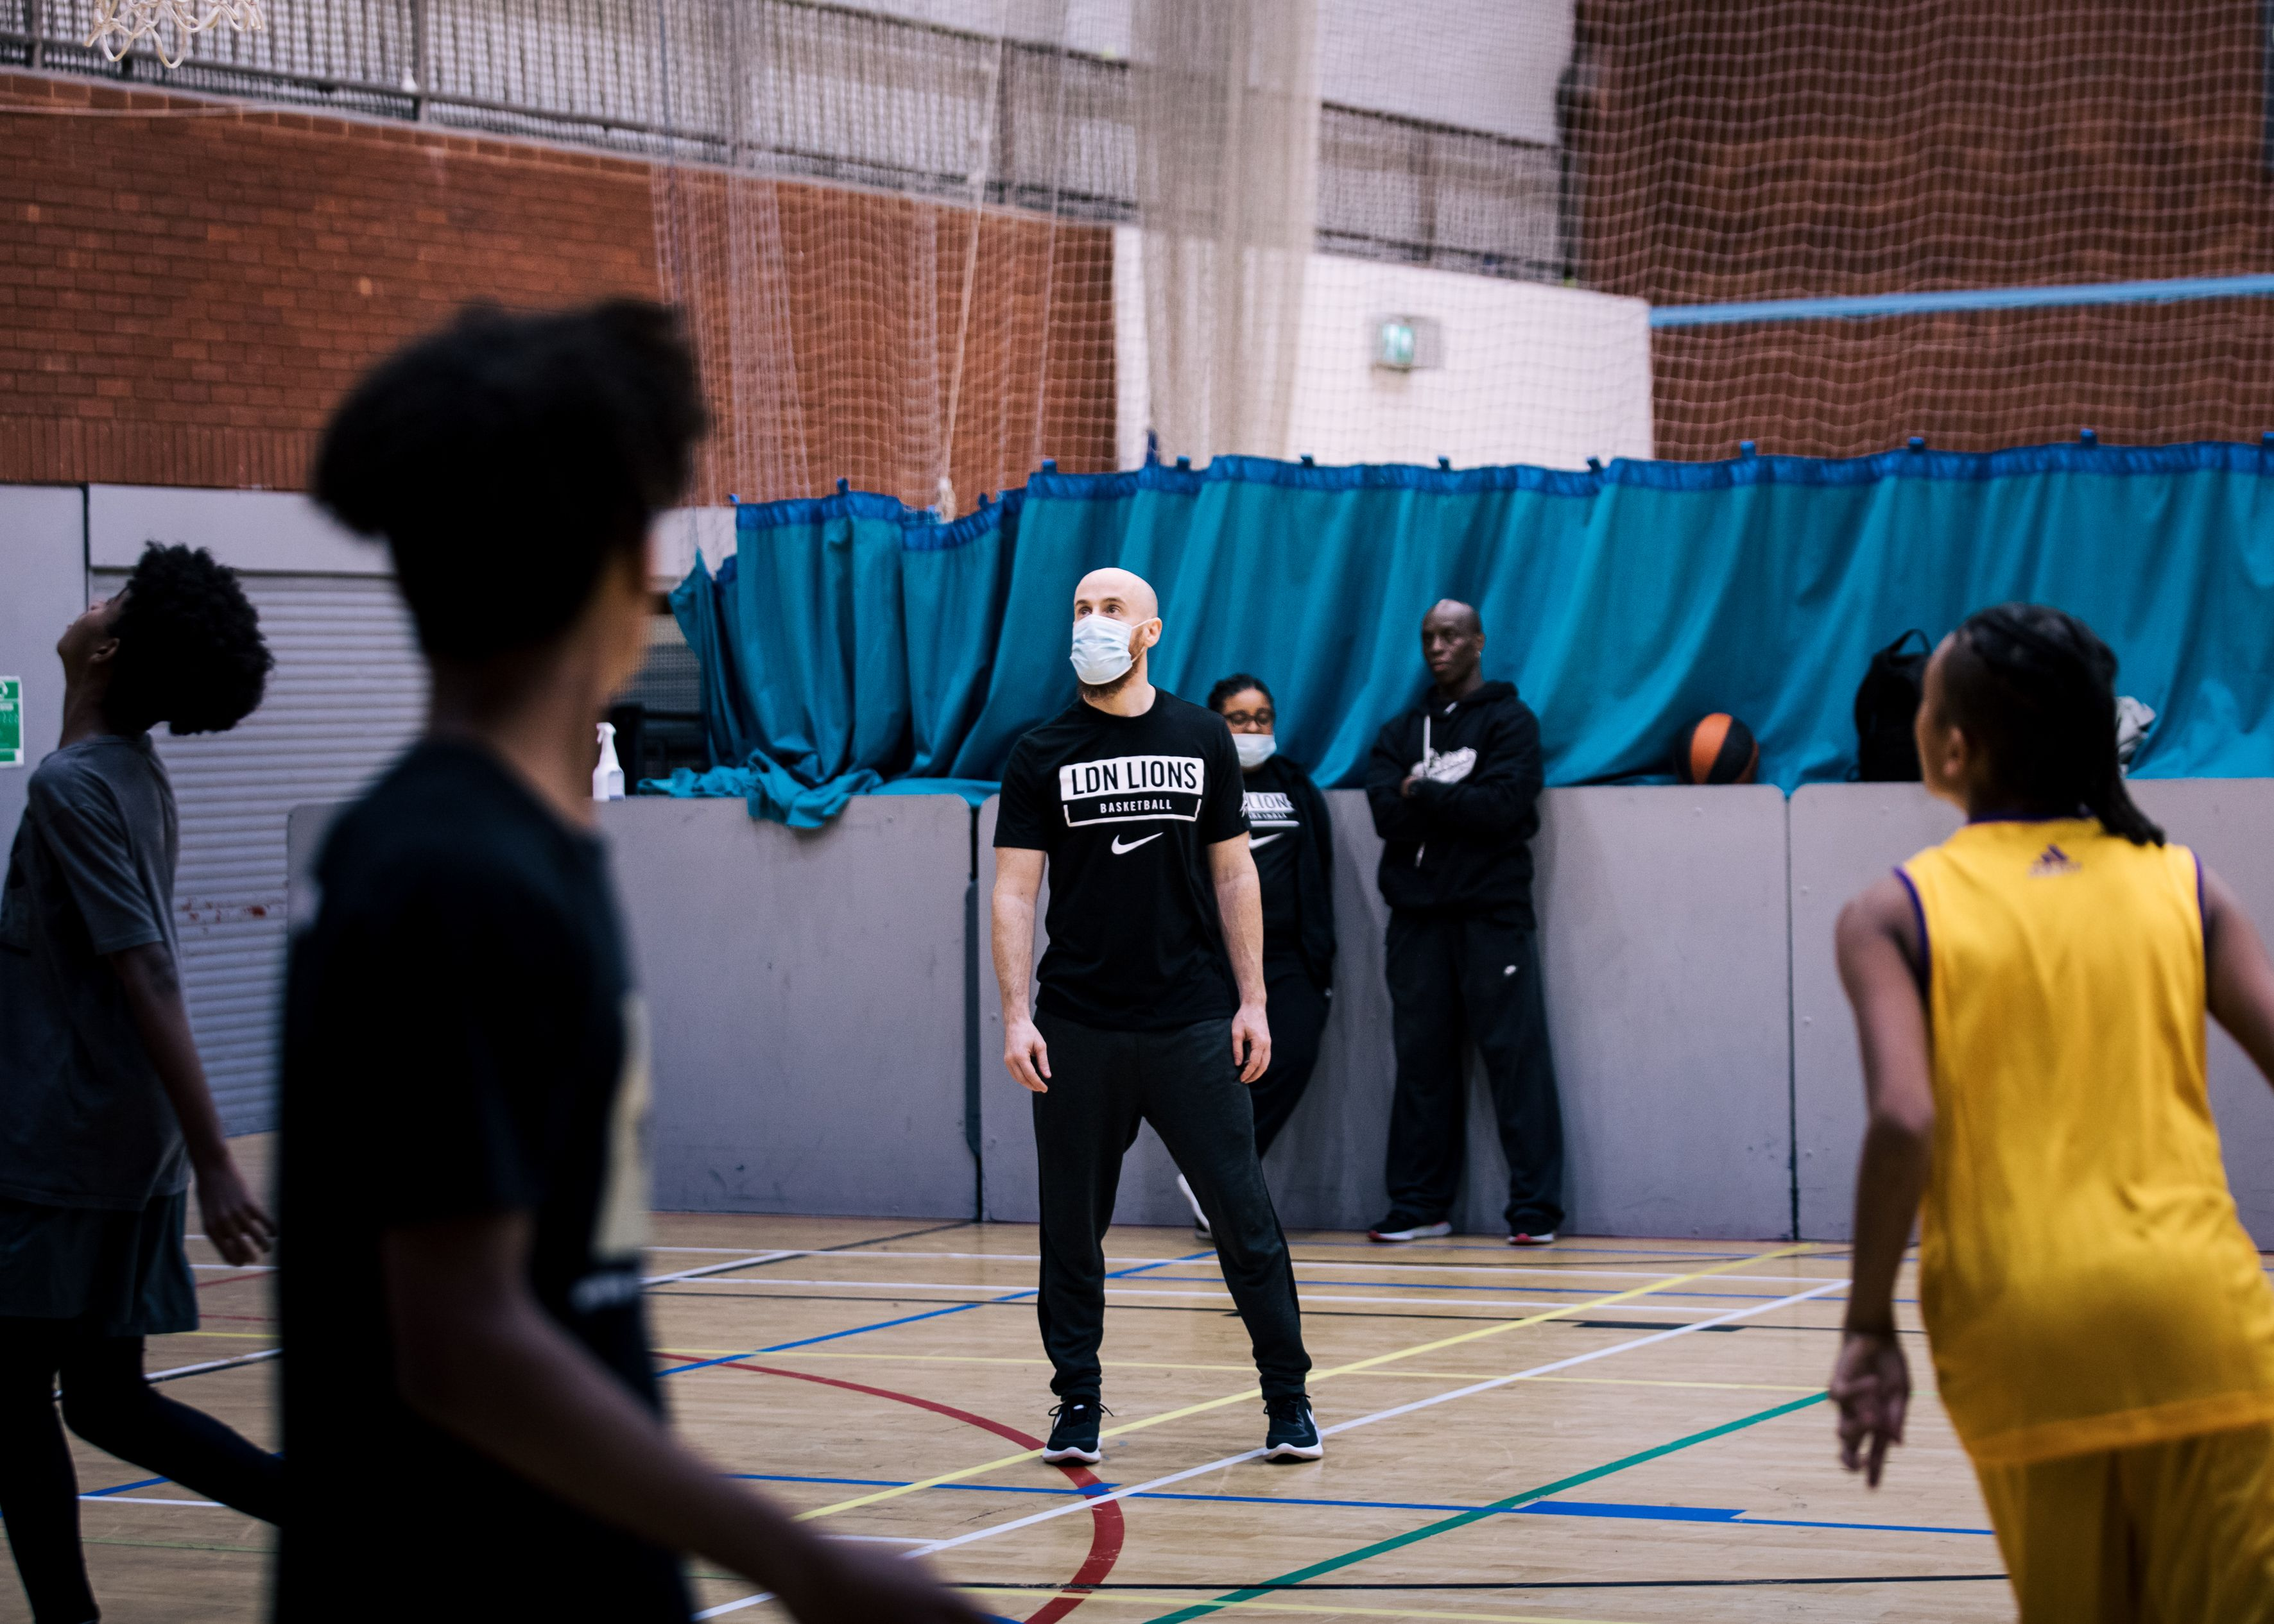 London Lions In The Community - Casual Coach Recruitment